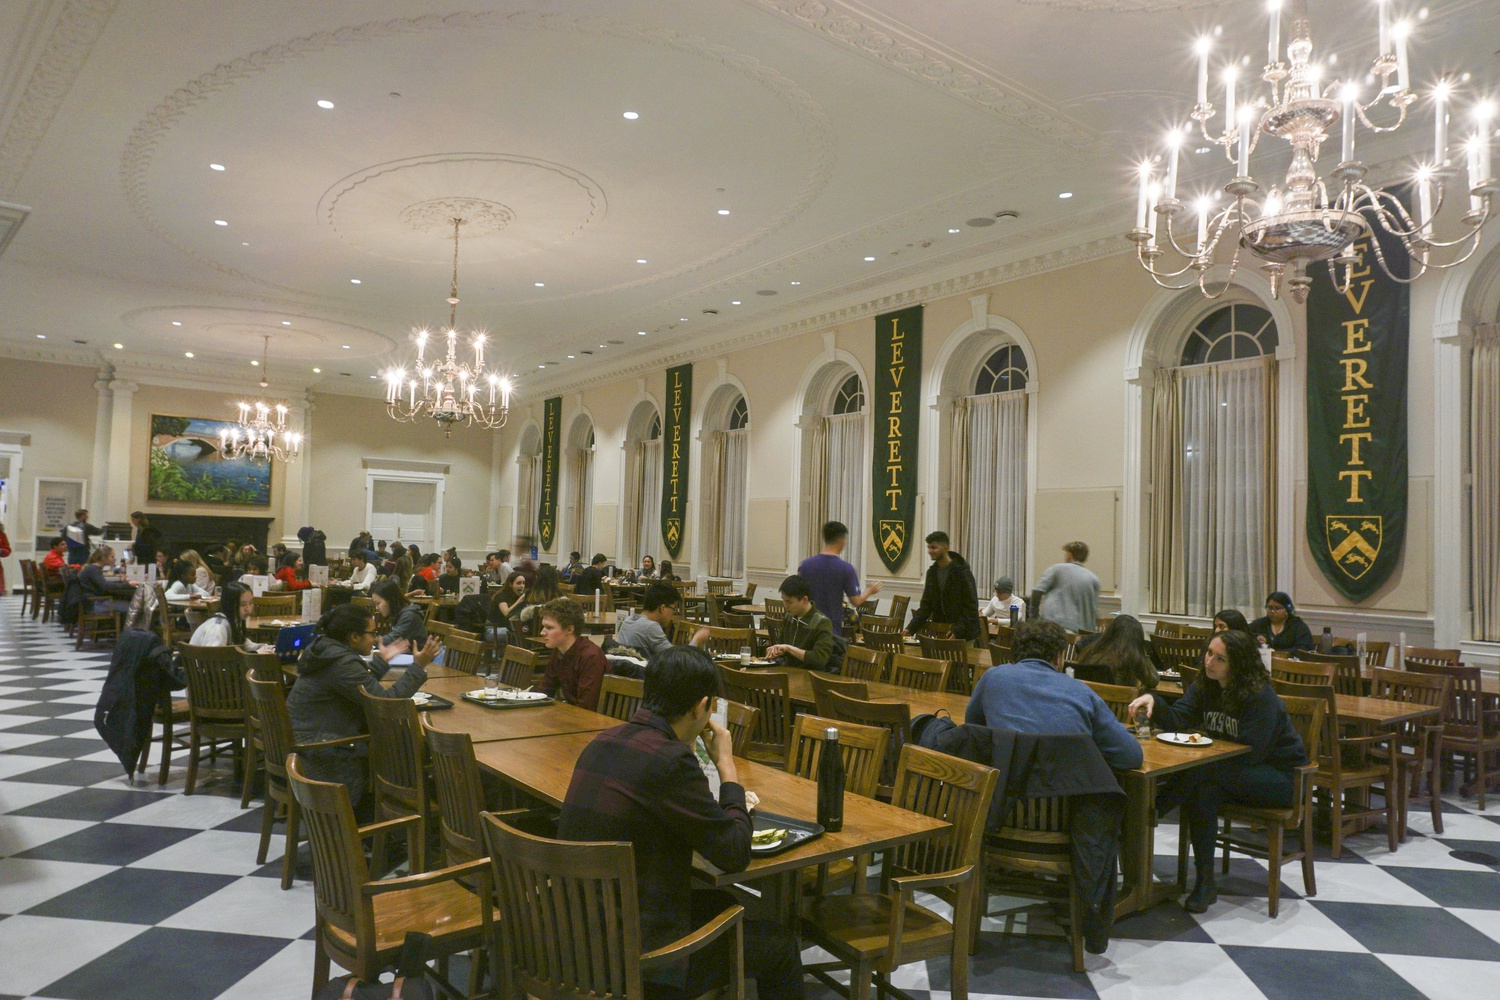 Leverett House has recently decided to close the dining hall from 2 a.m to 6 a.m. to support the dining hall staff.